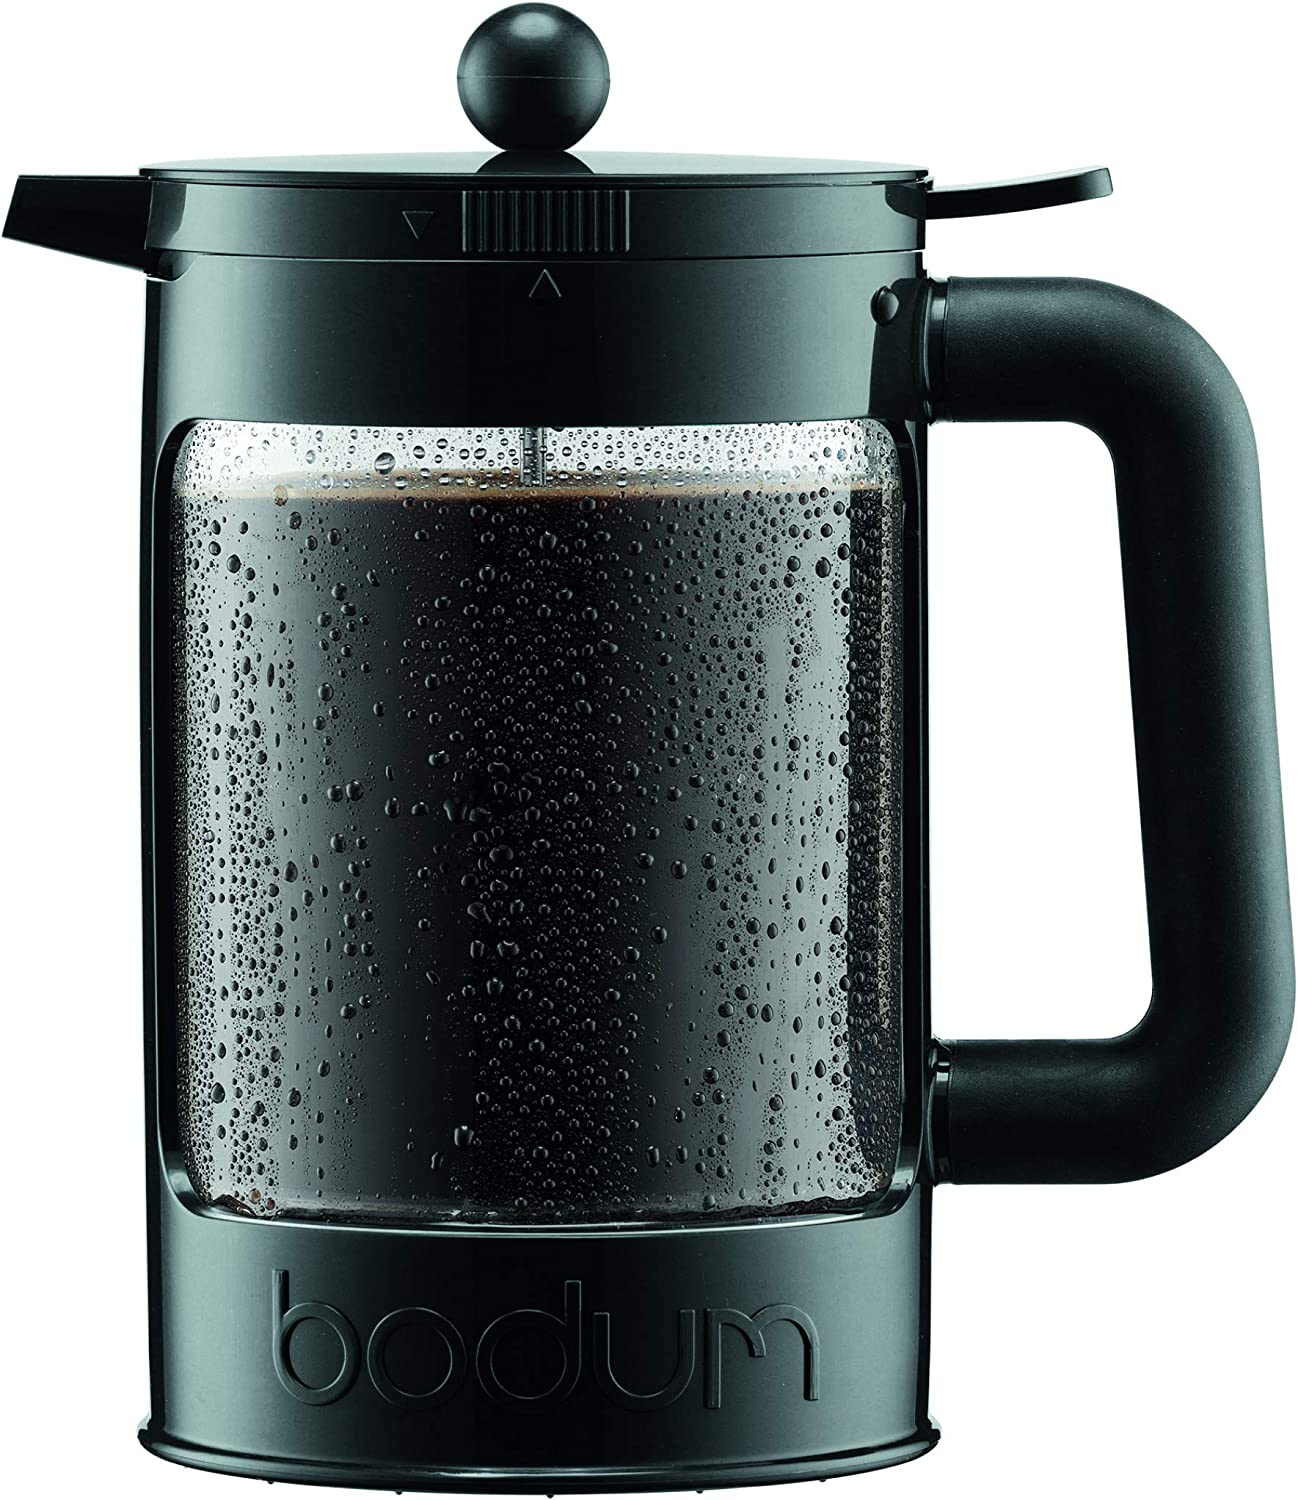 Bodum K11683-01WM Bean Cold Brew Coffee Maker, 51 Oz, Jet Black